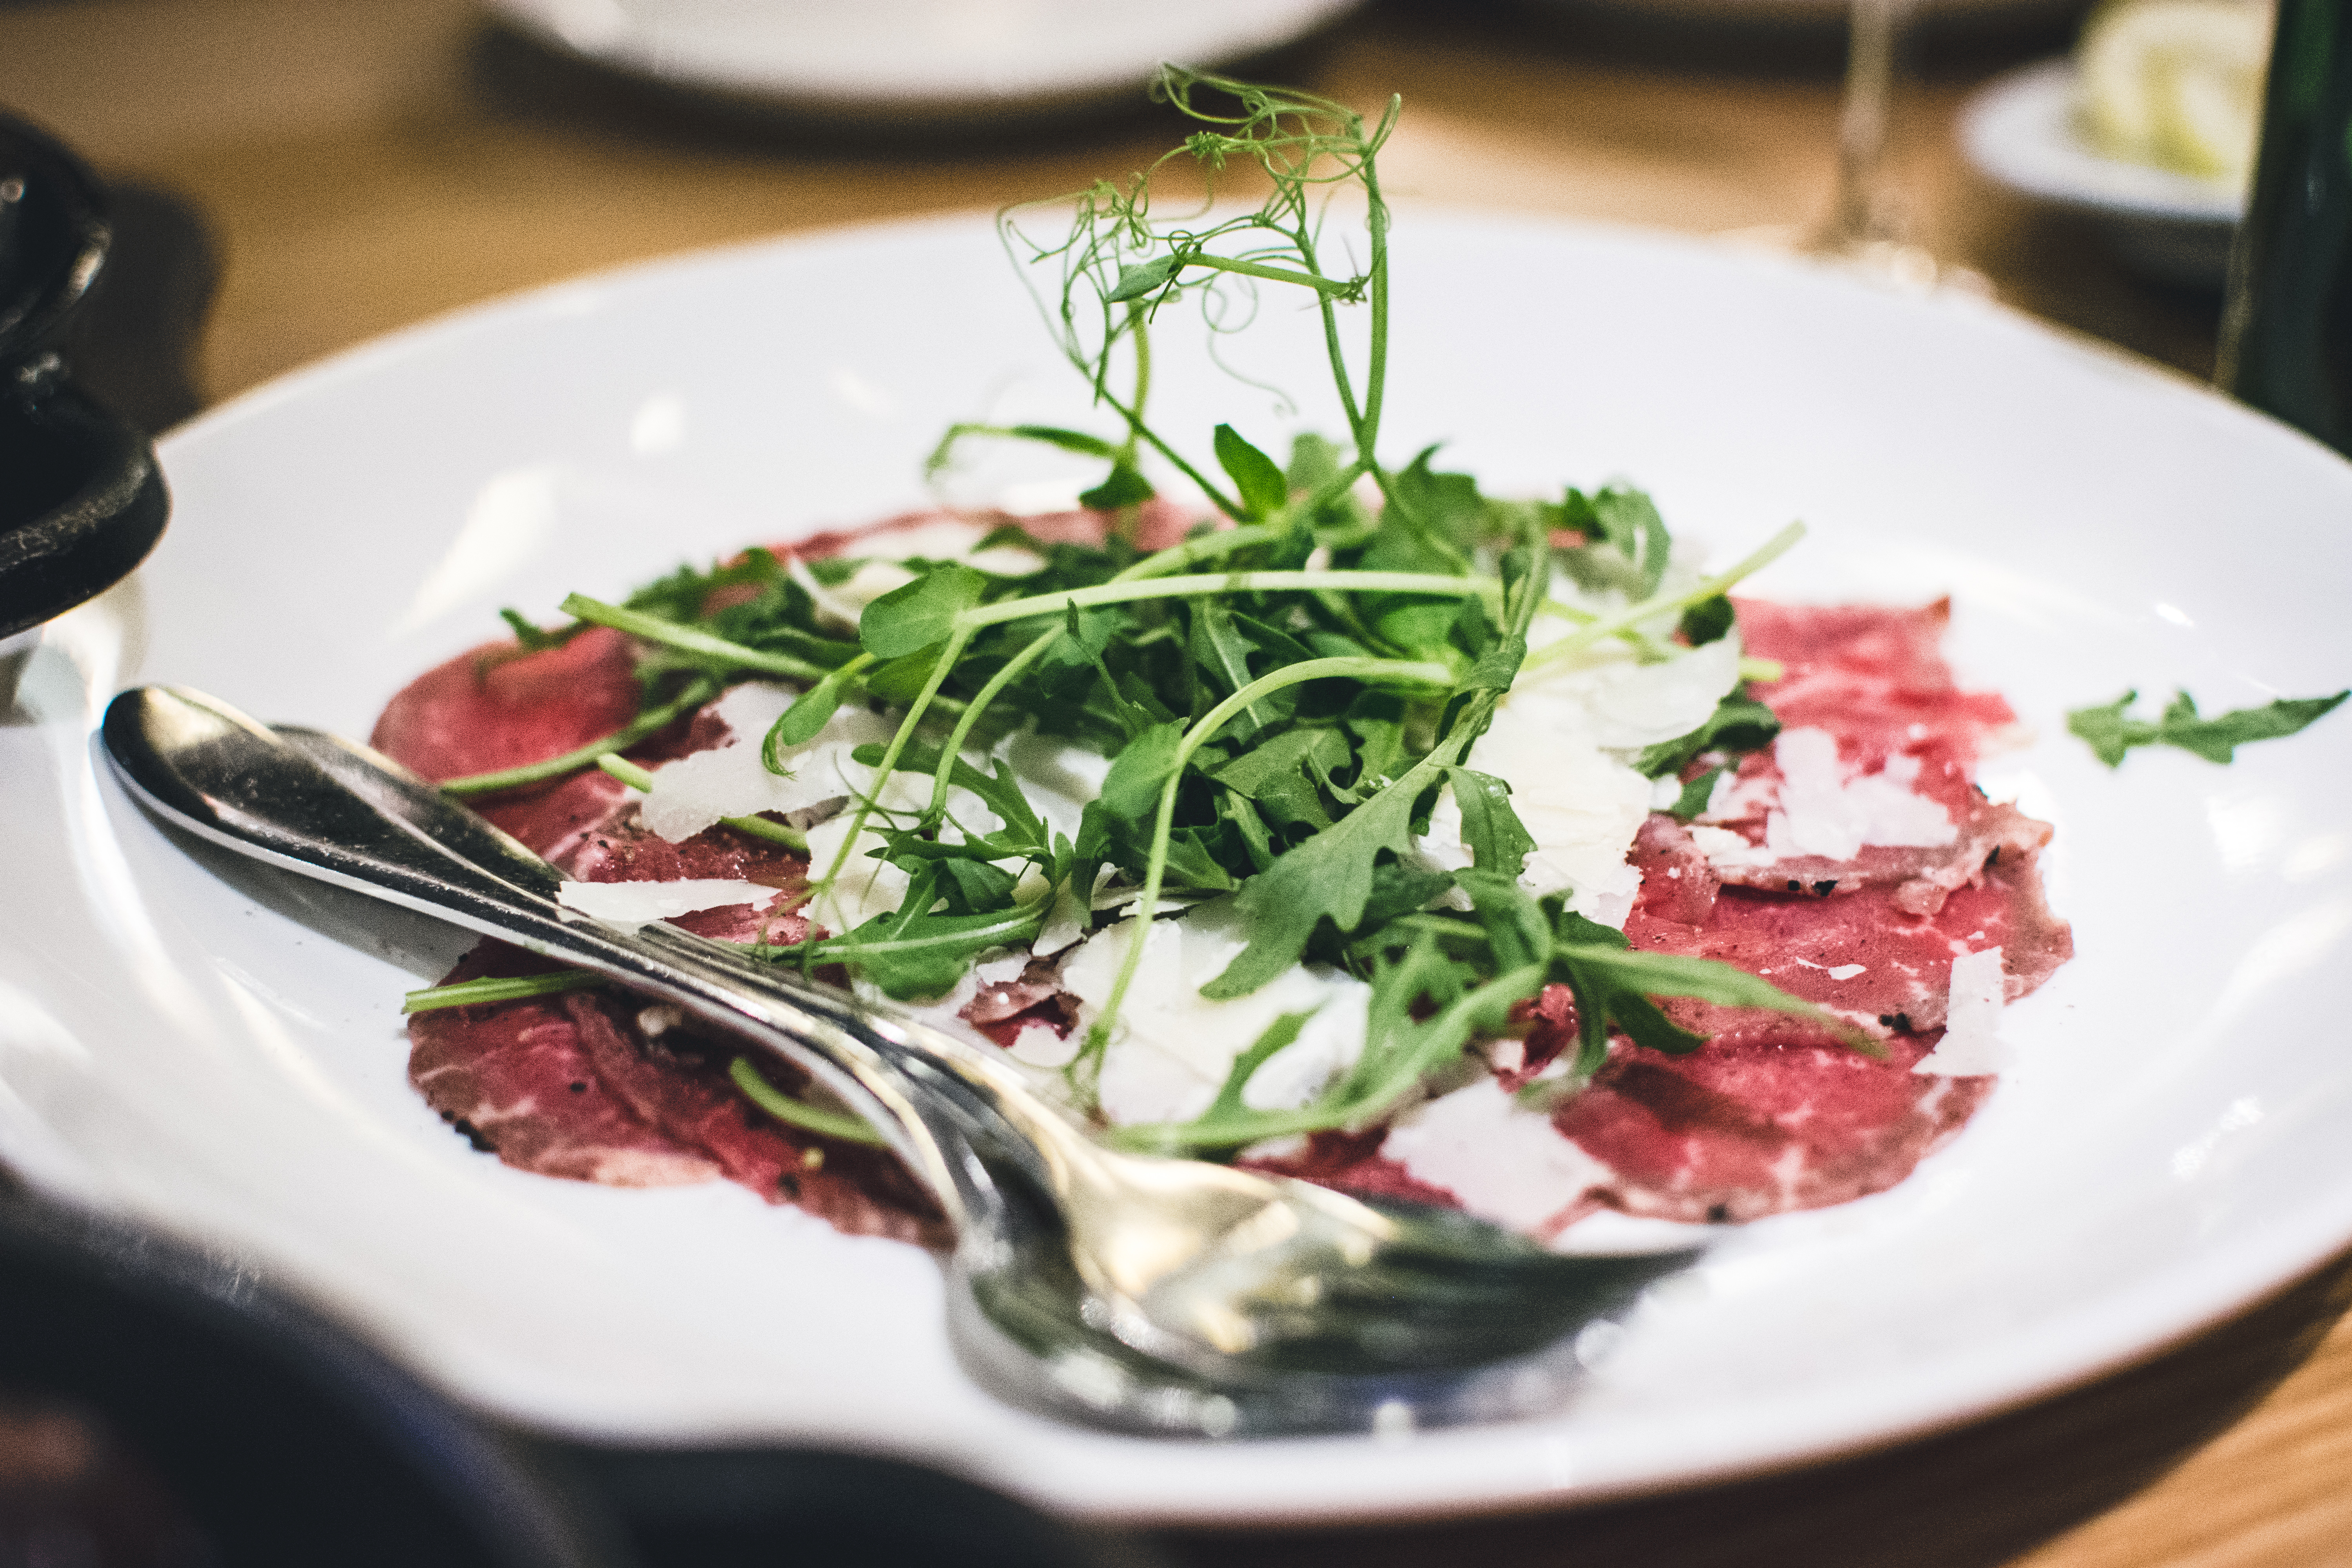 Bresaola carpaccio with rocket leaf